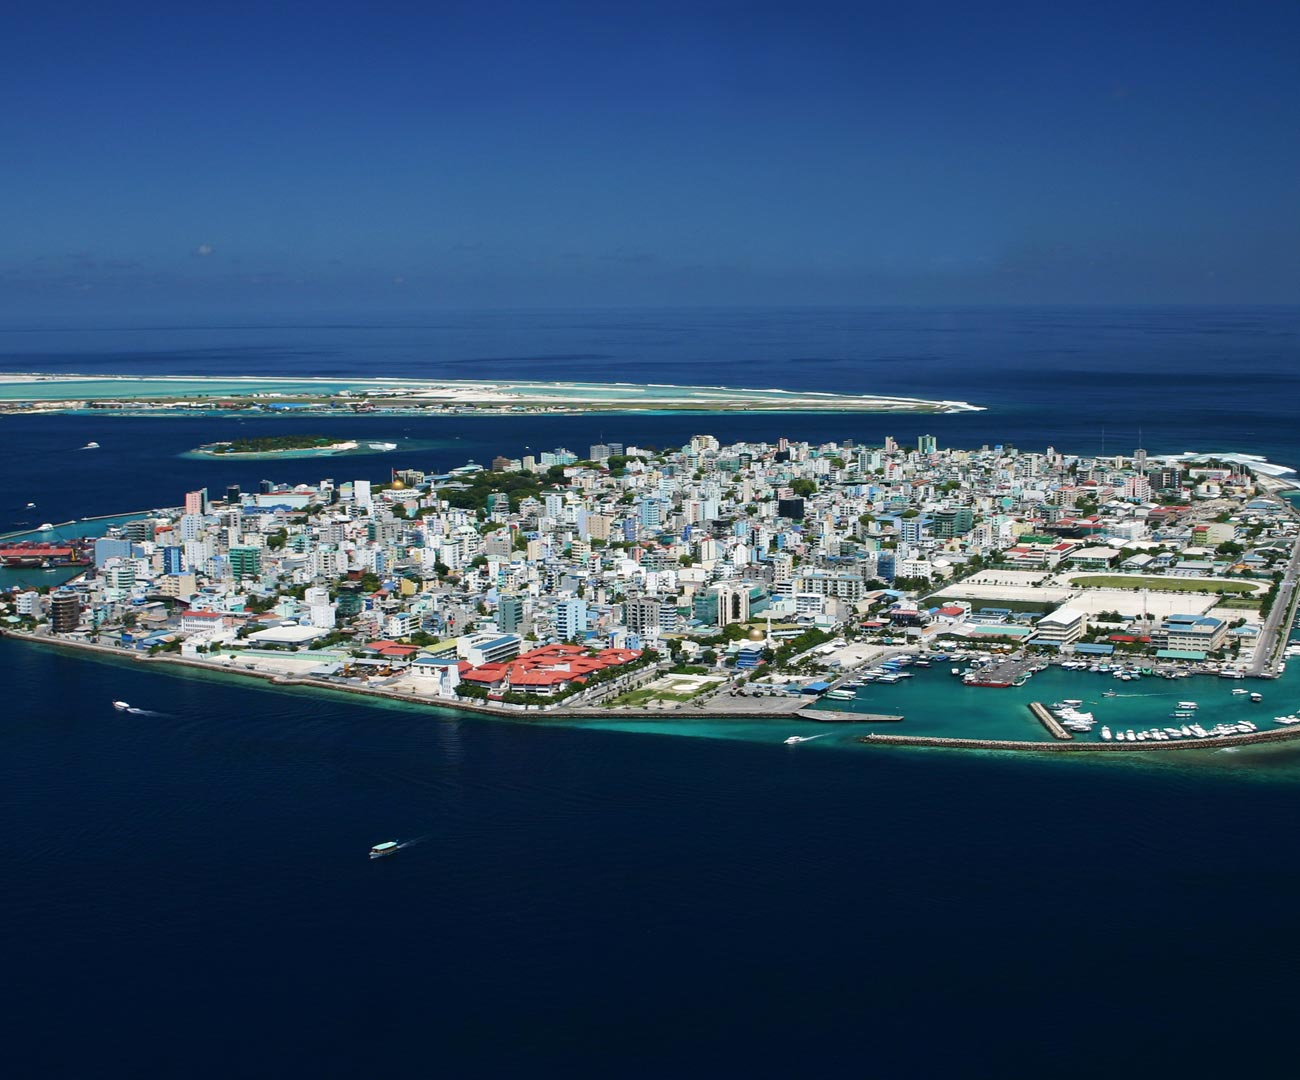 Maldives Island Excursions | Male' Tour Image | Kurumba Maldives